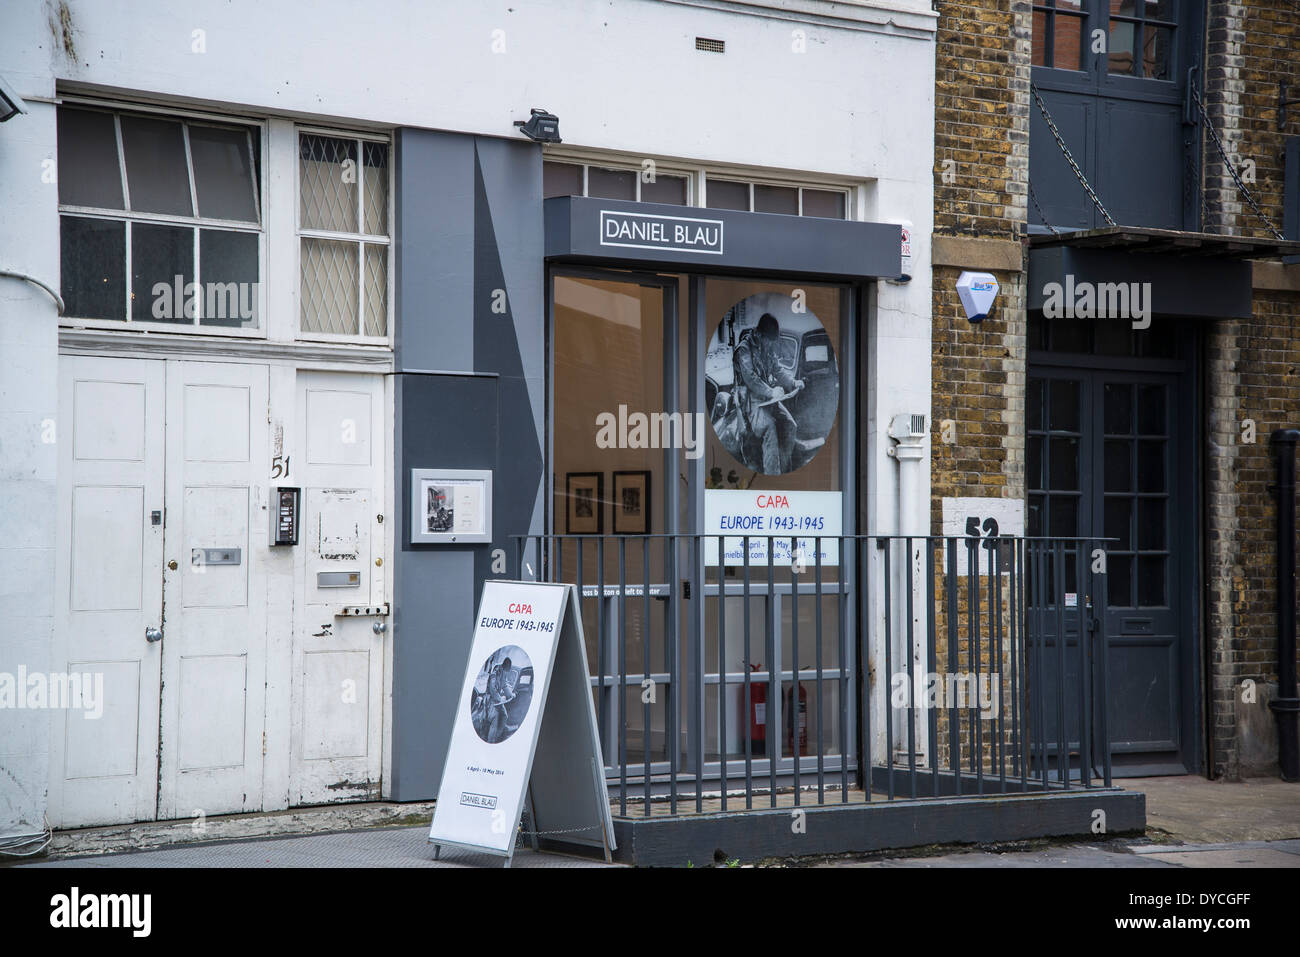 Daniel Blau gallery, Hoxton Square, Shoreditch, London, UK - Stock Image